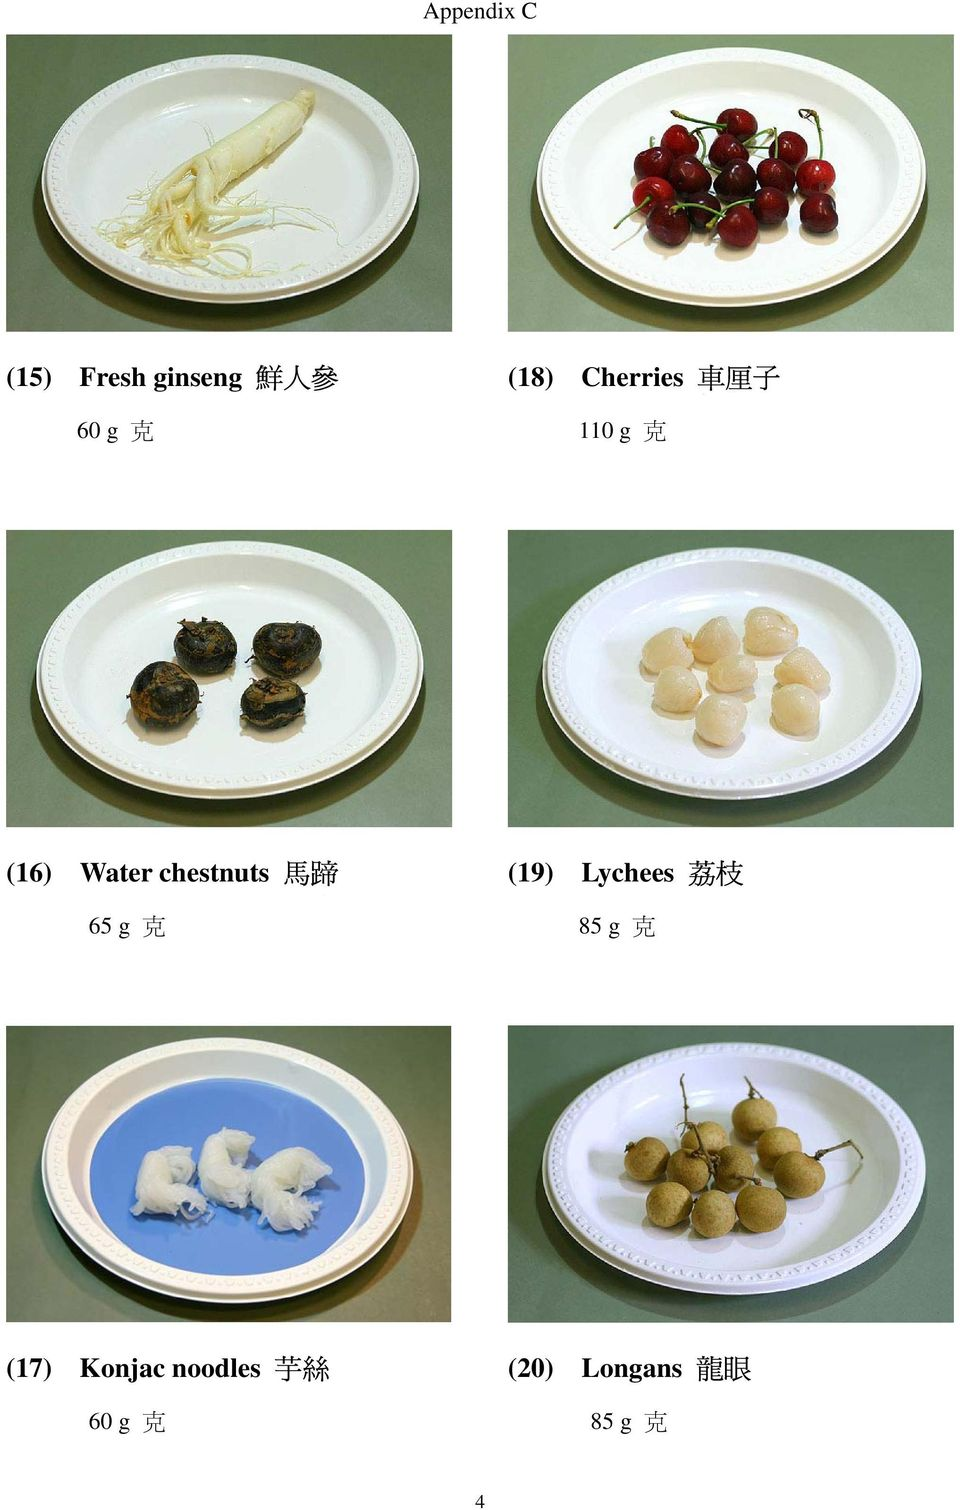 chestnuts 馬 蹄 65 g 克 (19) Lychees 荔 枝 85 g